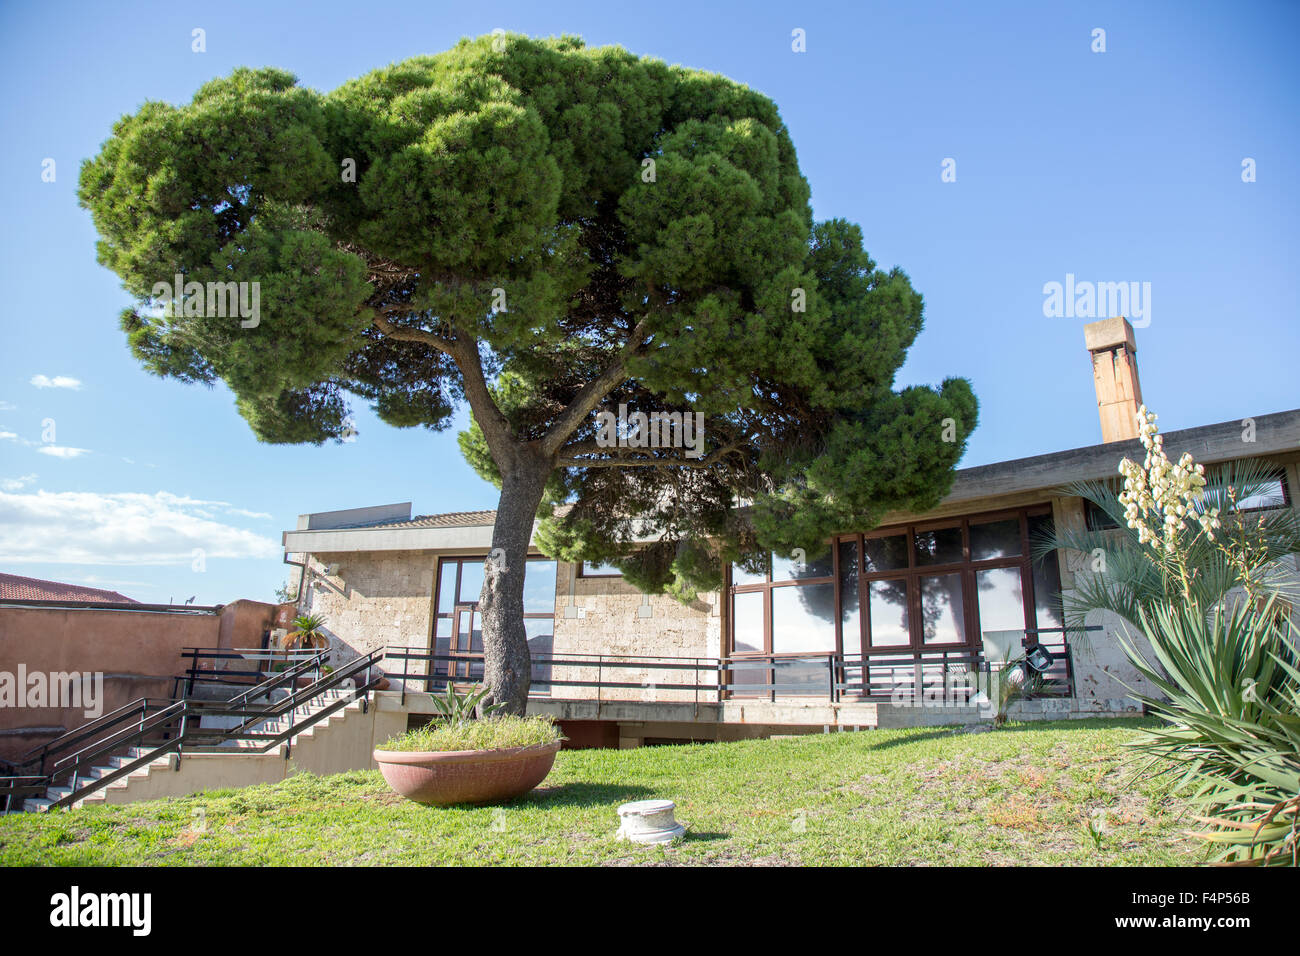 The Archeological Museum Cagliari Sardinia - Stock Image